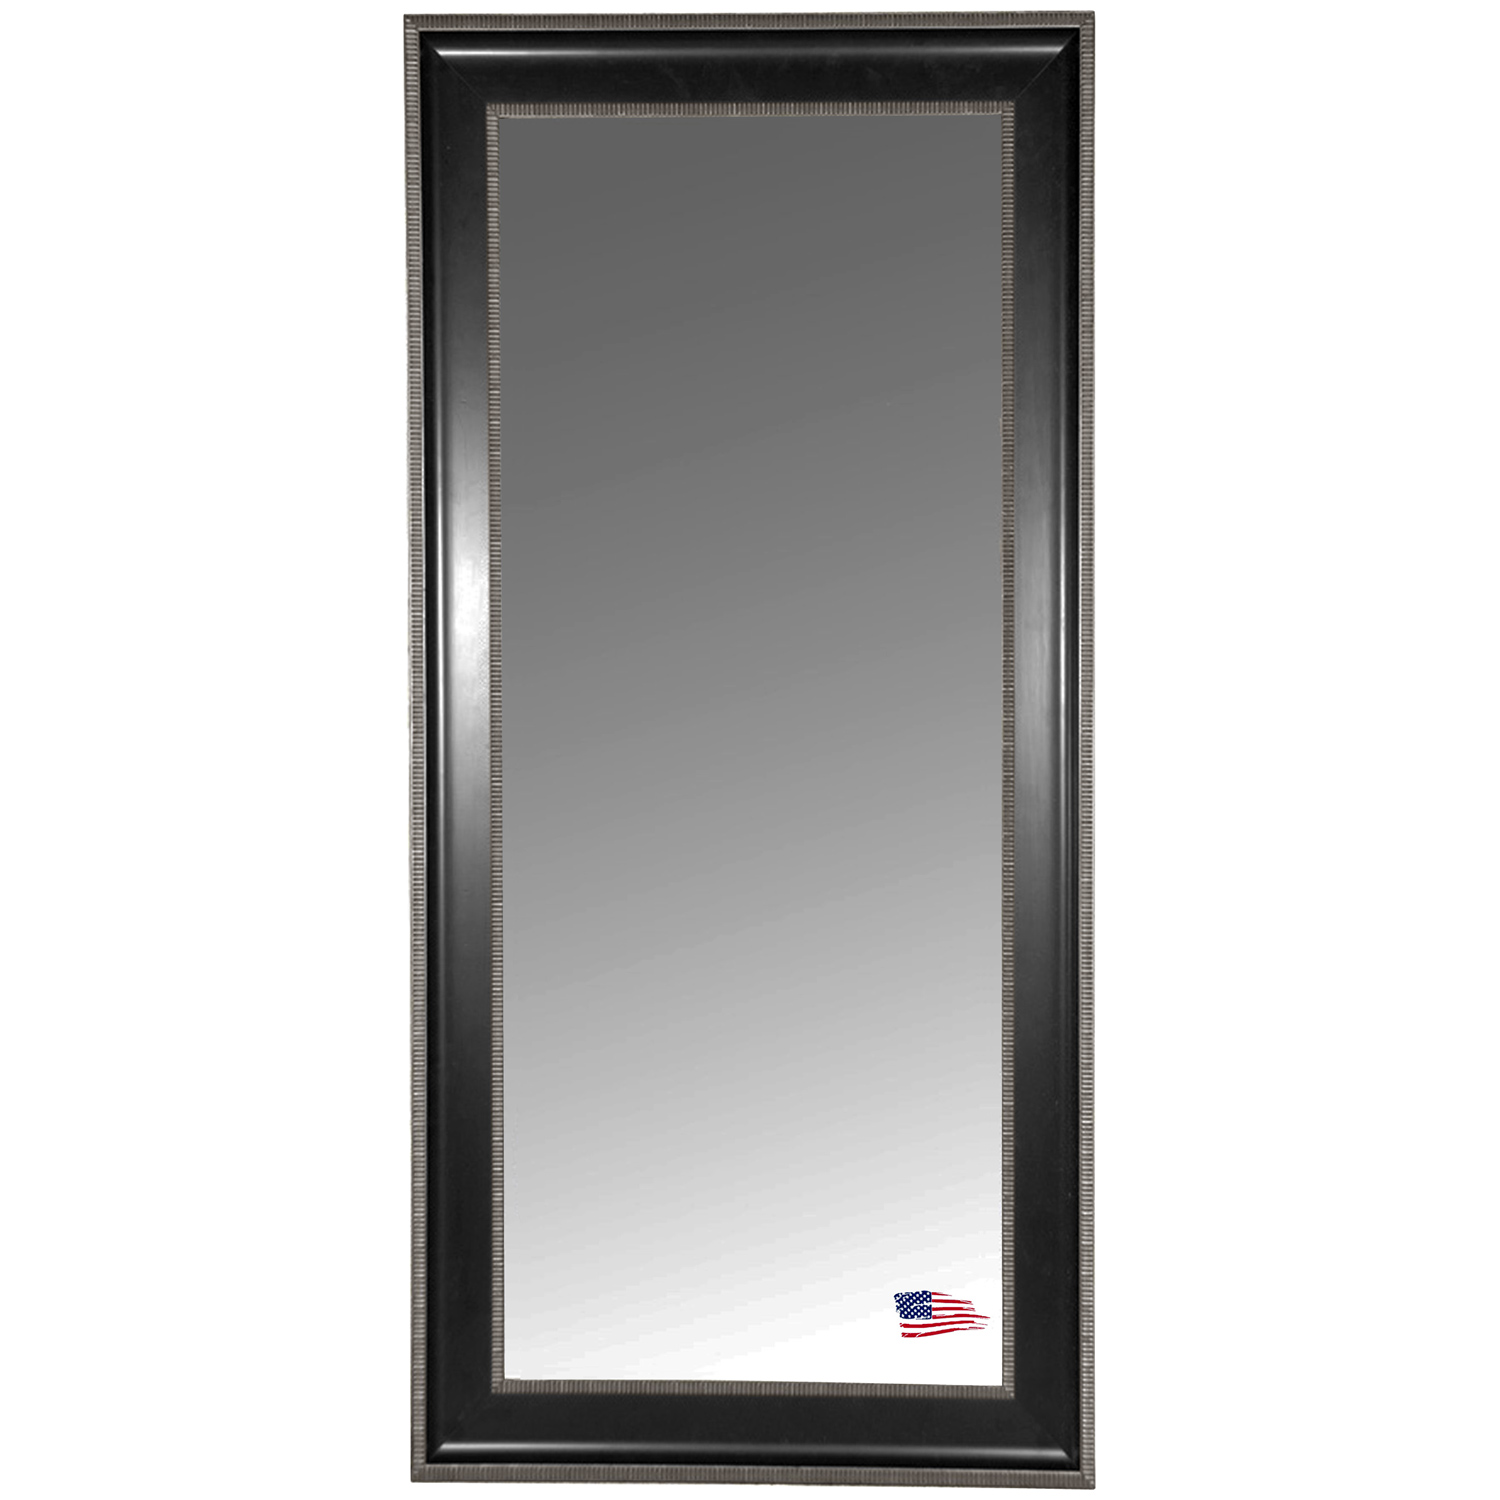 Floor Mirror - Black & Silver Caged Trim Frame